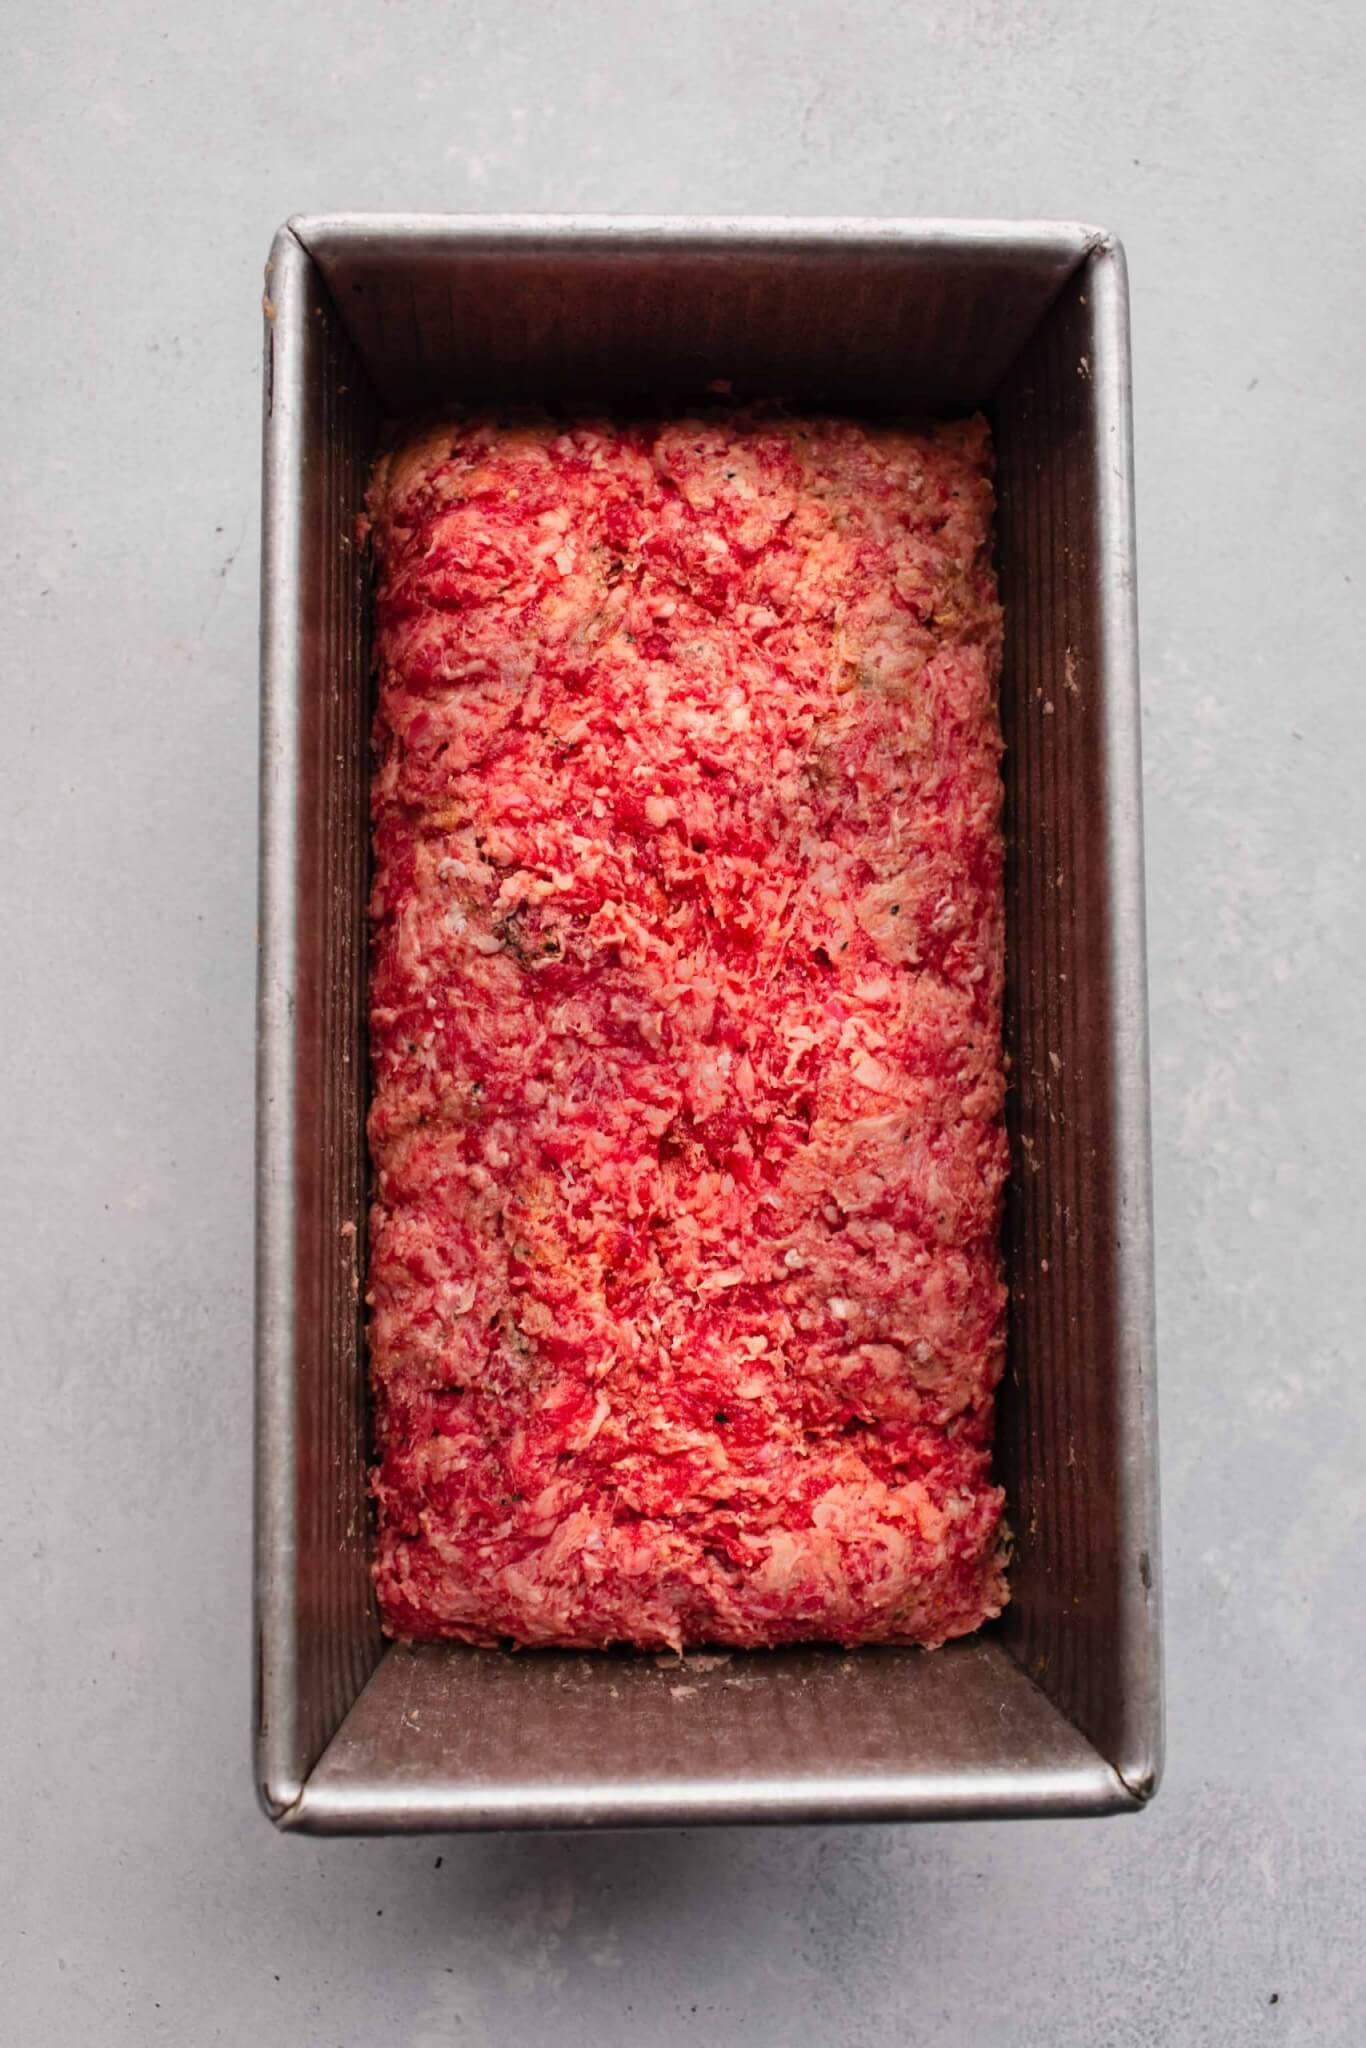 Unbaked meatloaf in pan.